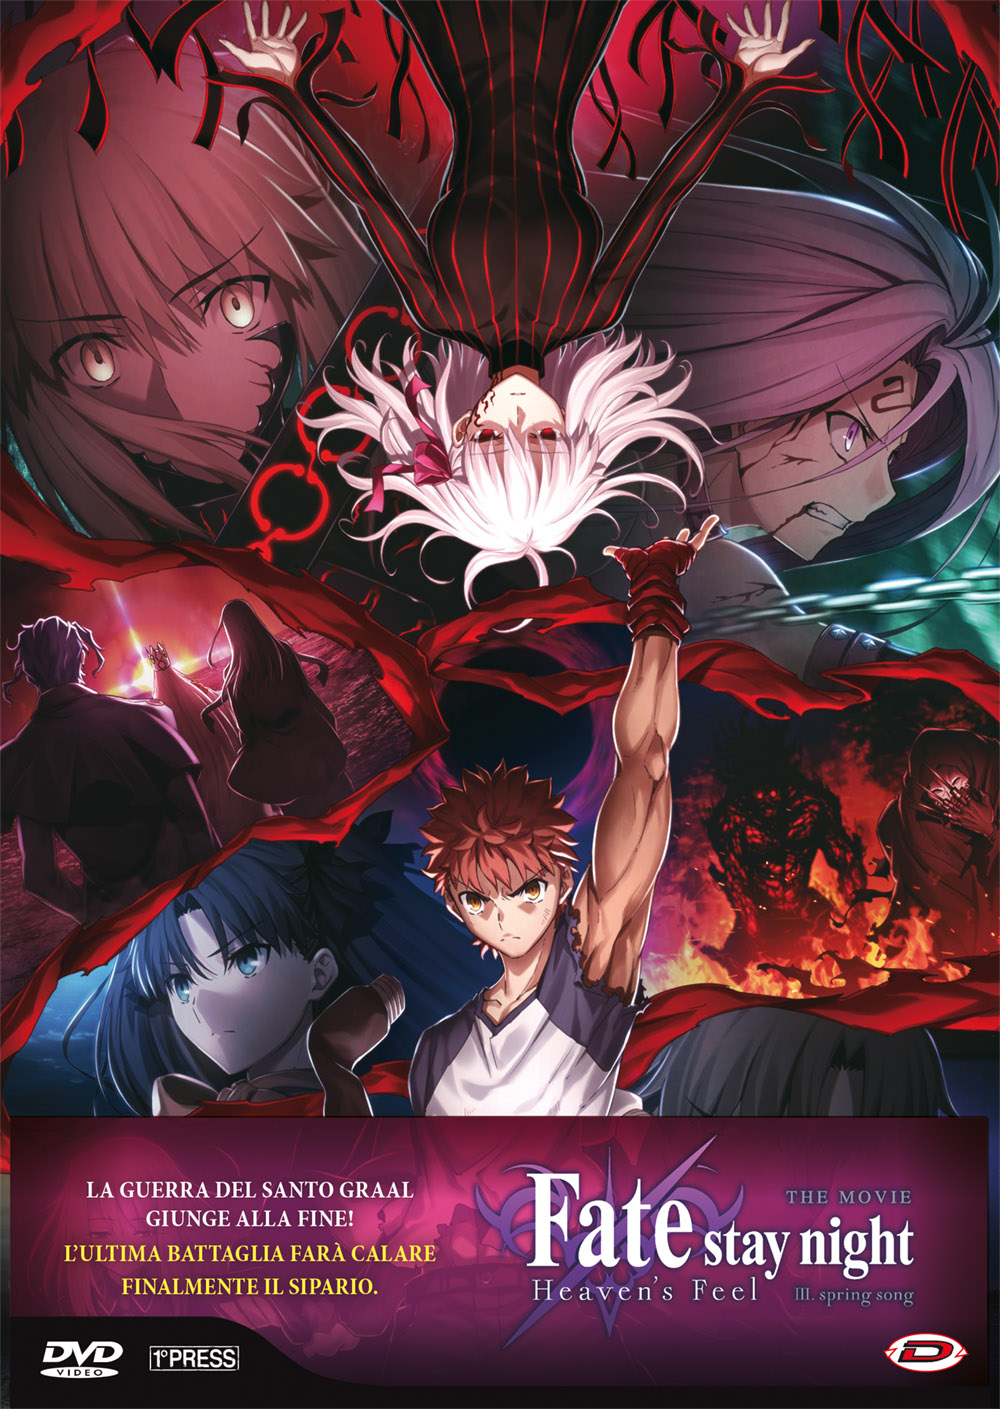 FATE/STAY NIGHT - HEAVEN'S FEEL 3. SPRING SONG (FIRST PRESS) (DV